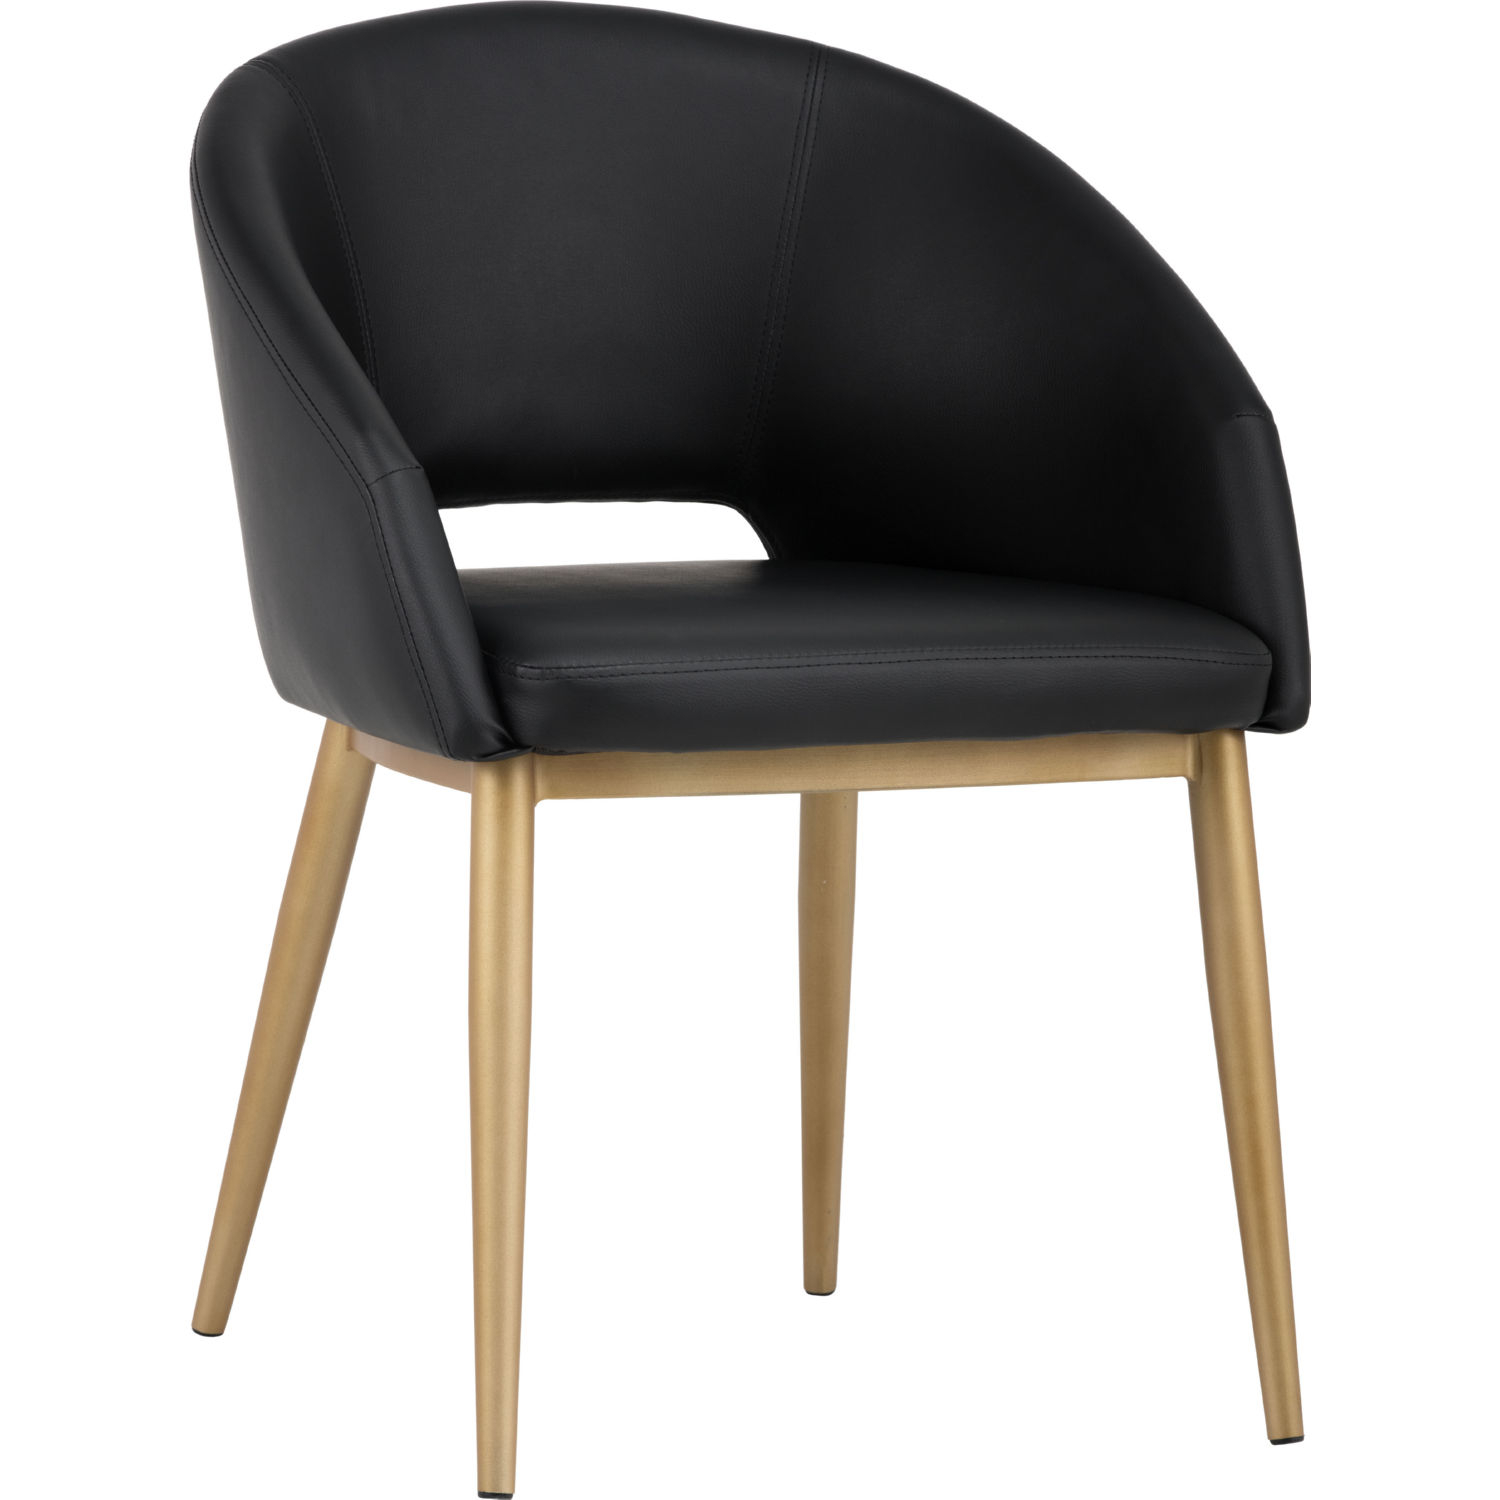 Sunpan Thatcher Dining Chair in yx Leatherette on Brass Legs